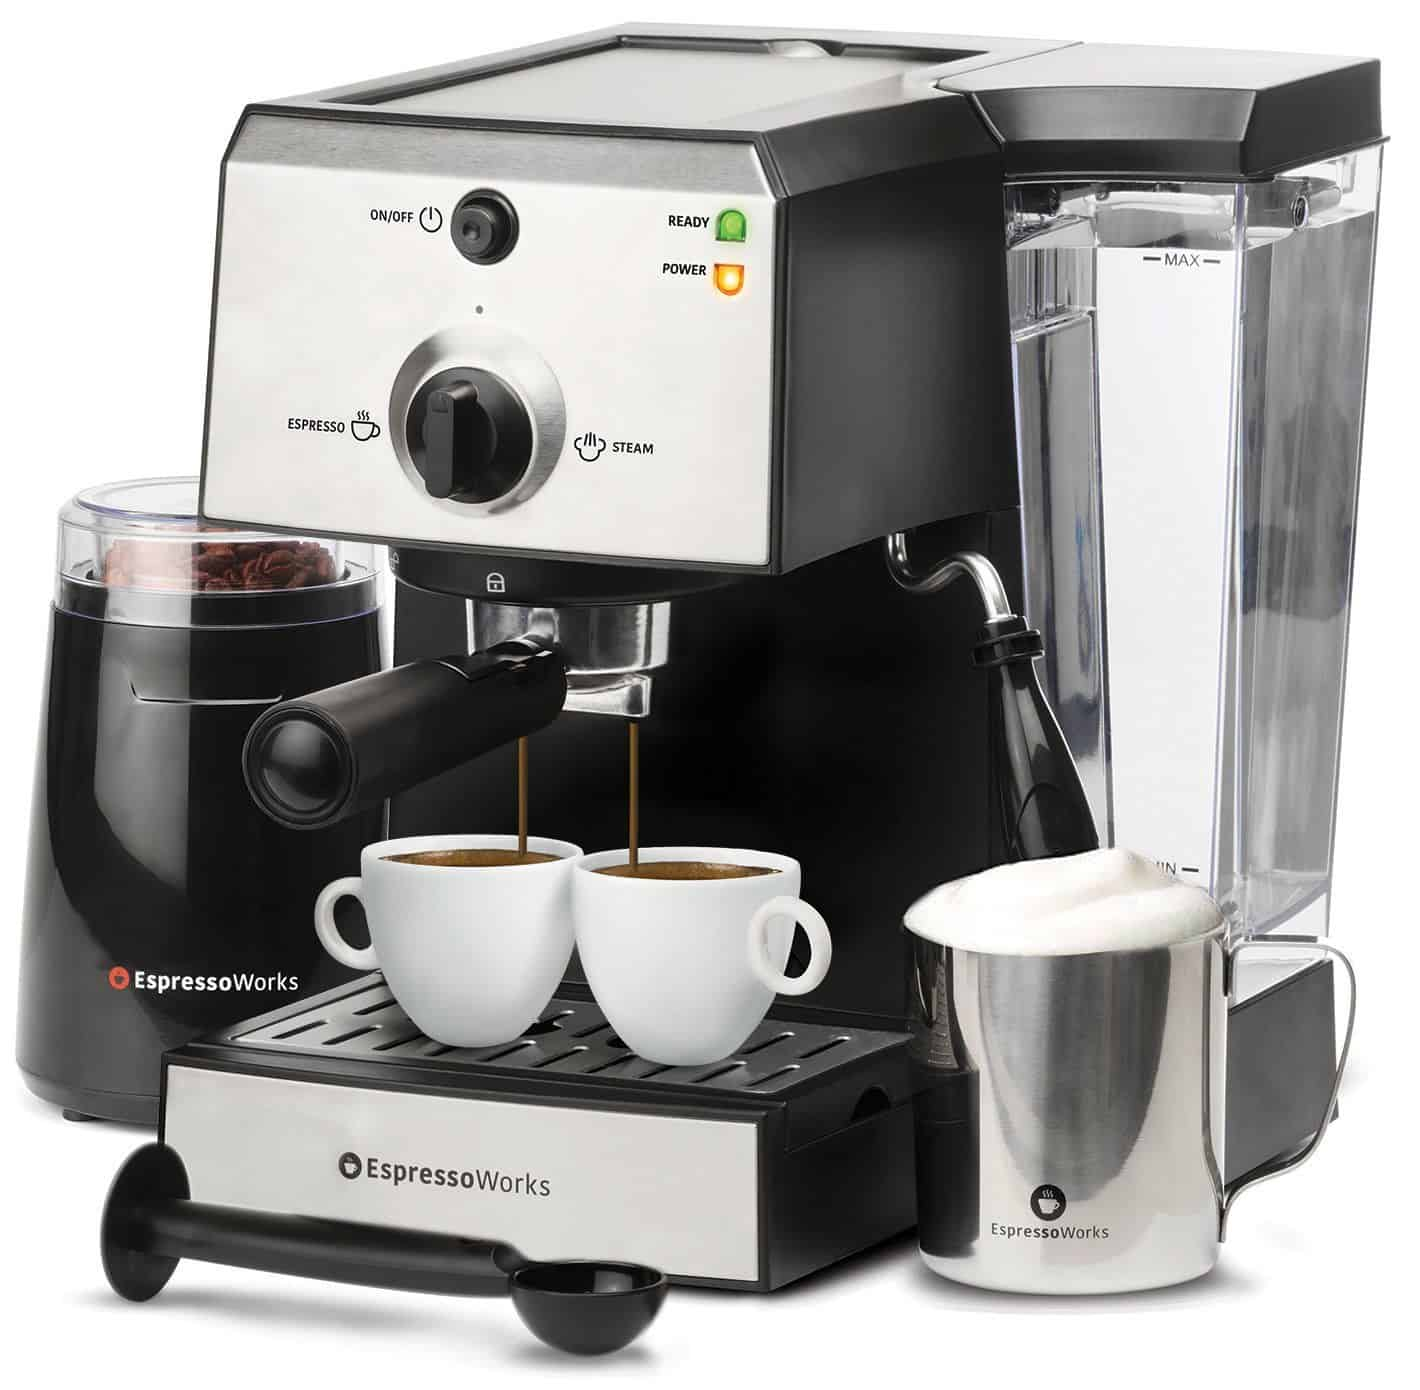 Top 15 Best Small Espresso Machine Options For 2019